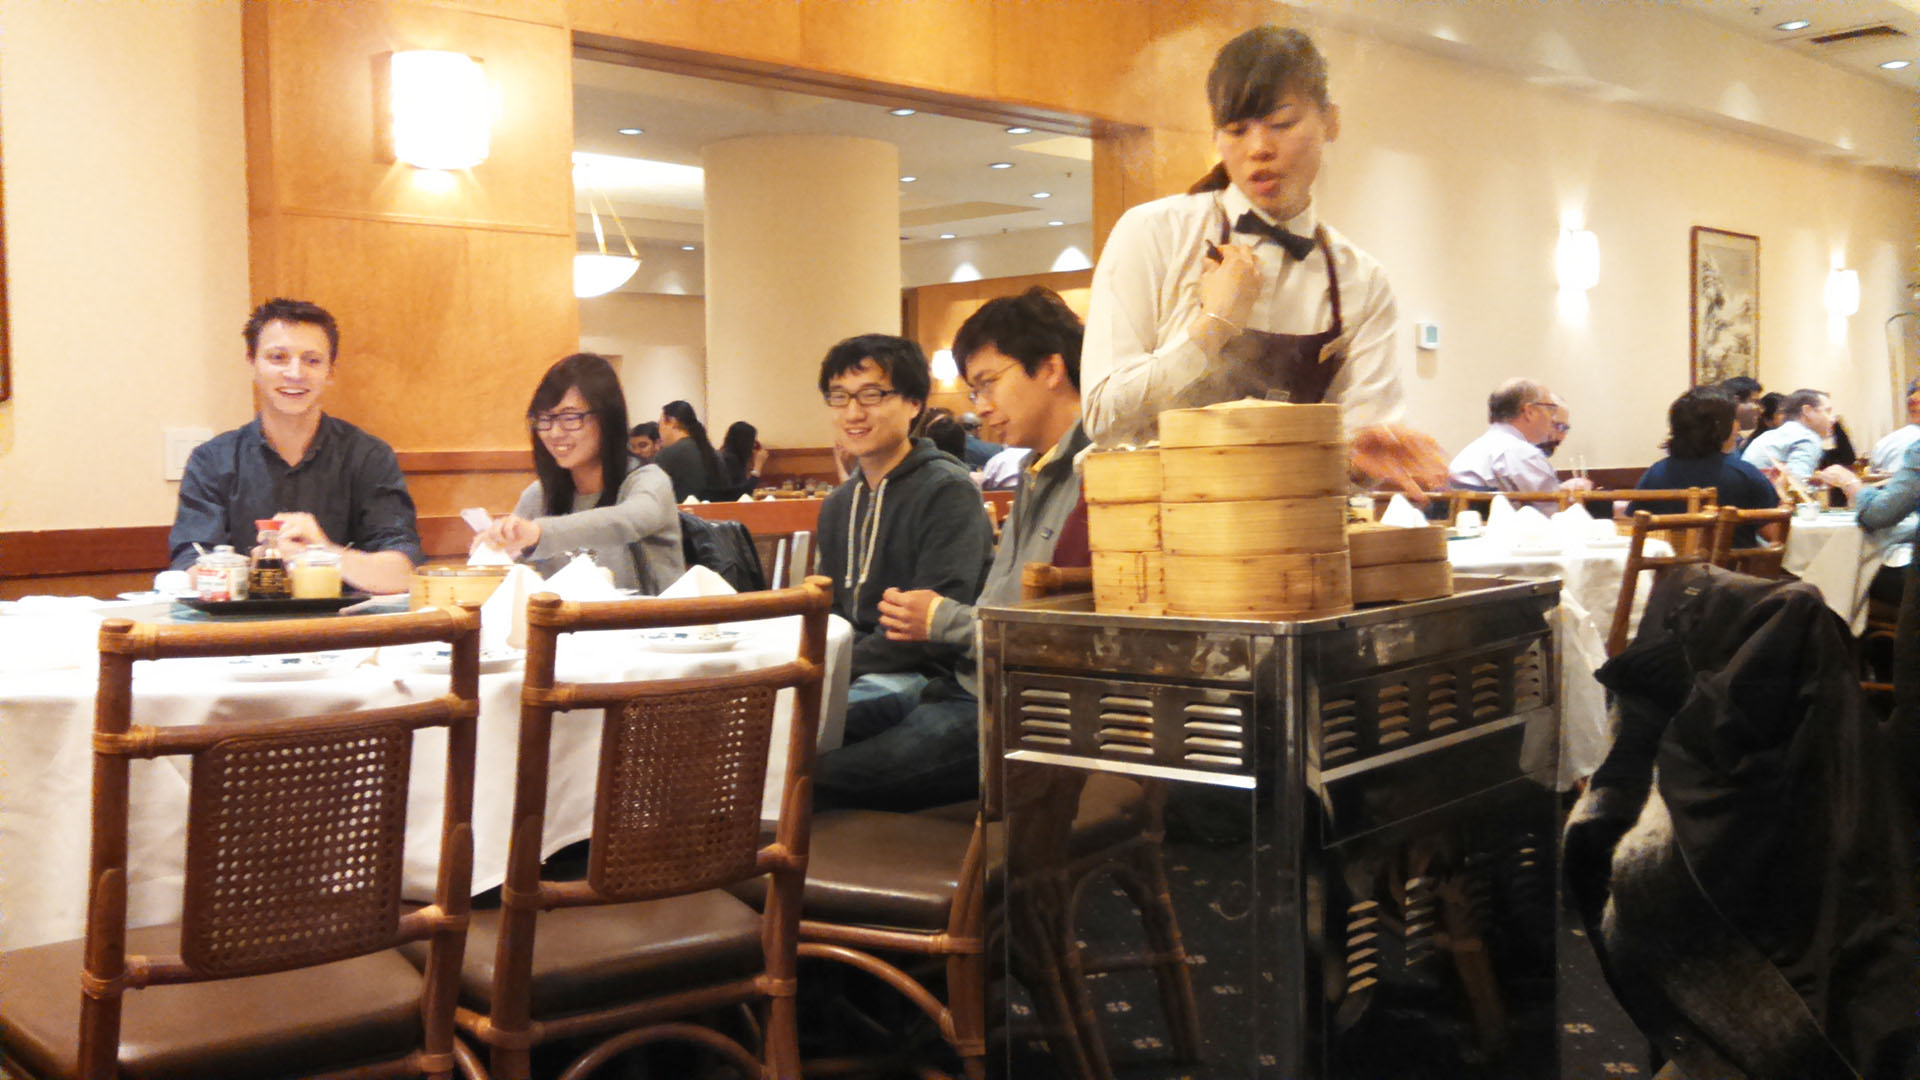 The servers at Yank Sing push a trolley with dumpling options